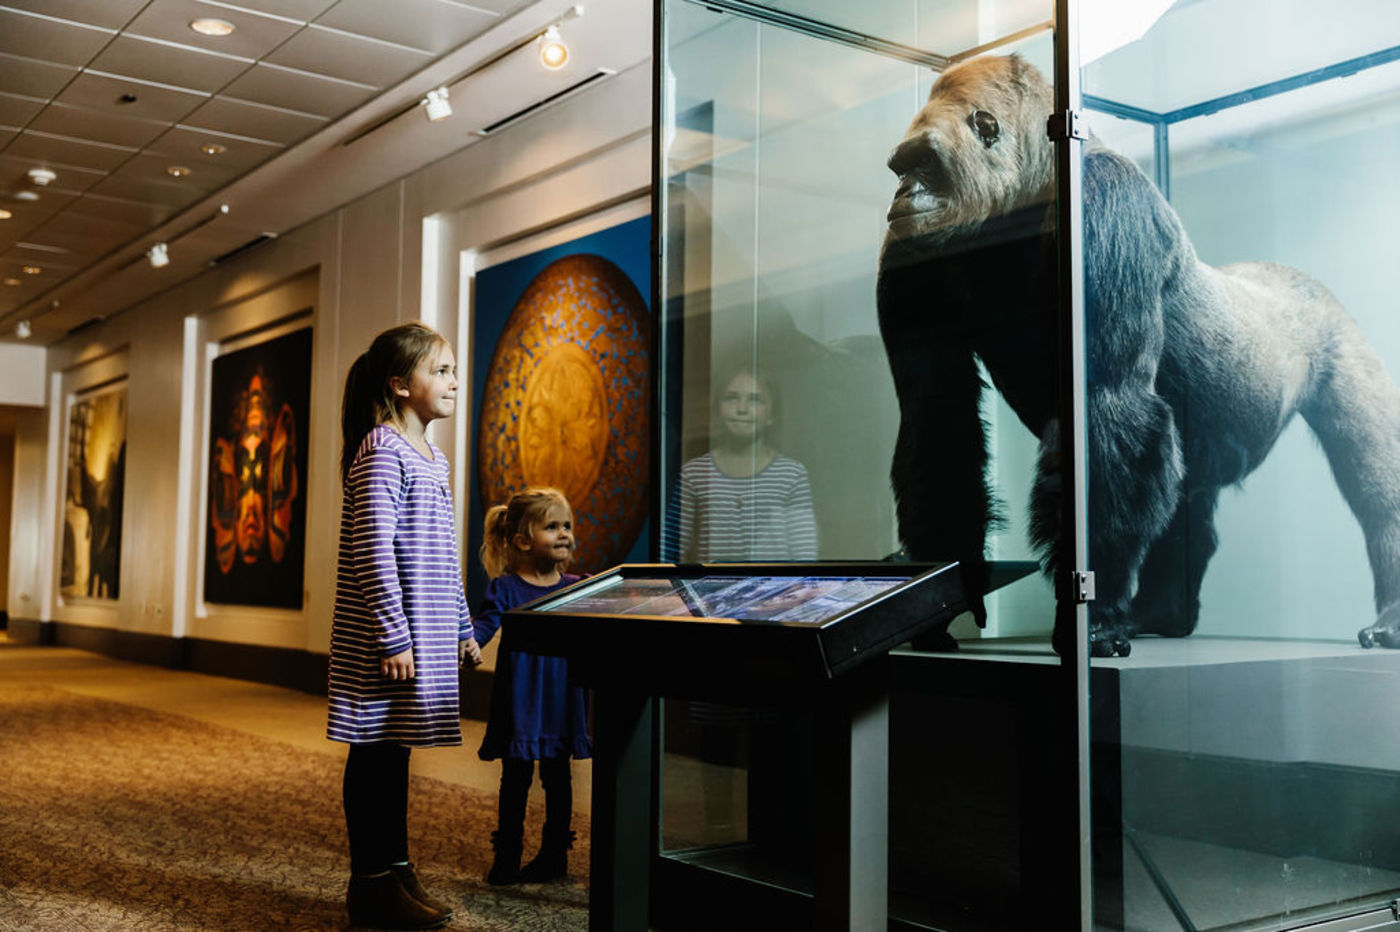 Two young girls look up at a taxidermied gorilla in a glass display case. The gorilla's head is angled such that it appears to be making eye contact with the children. A digital rail, a screen on a stand, is positioned in front of the case. In the background, large-scale photographs of objects are affixed to the wall.